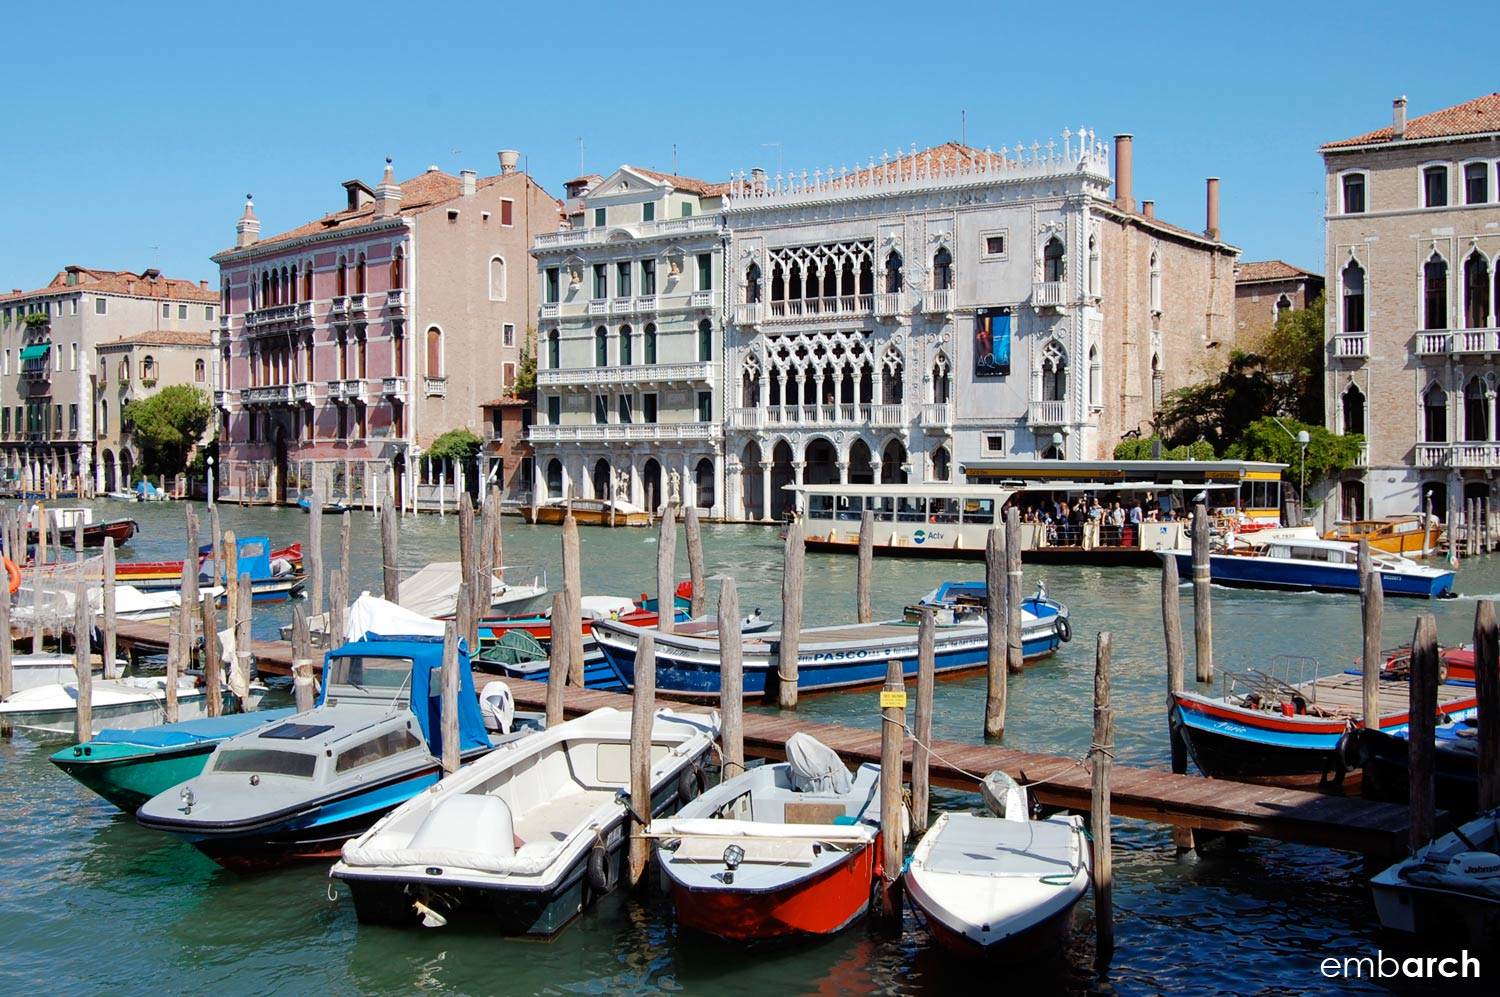 Grand Canal (Canal Grande), Venice, Italy